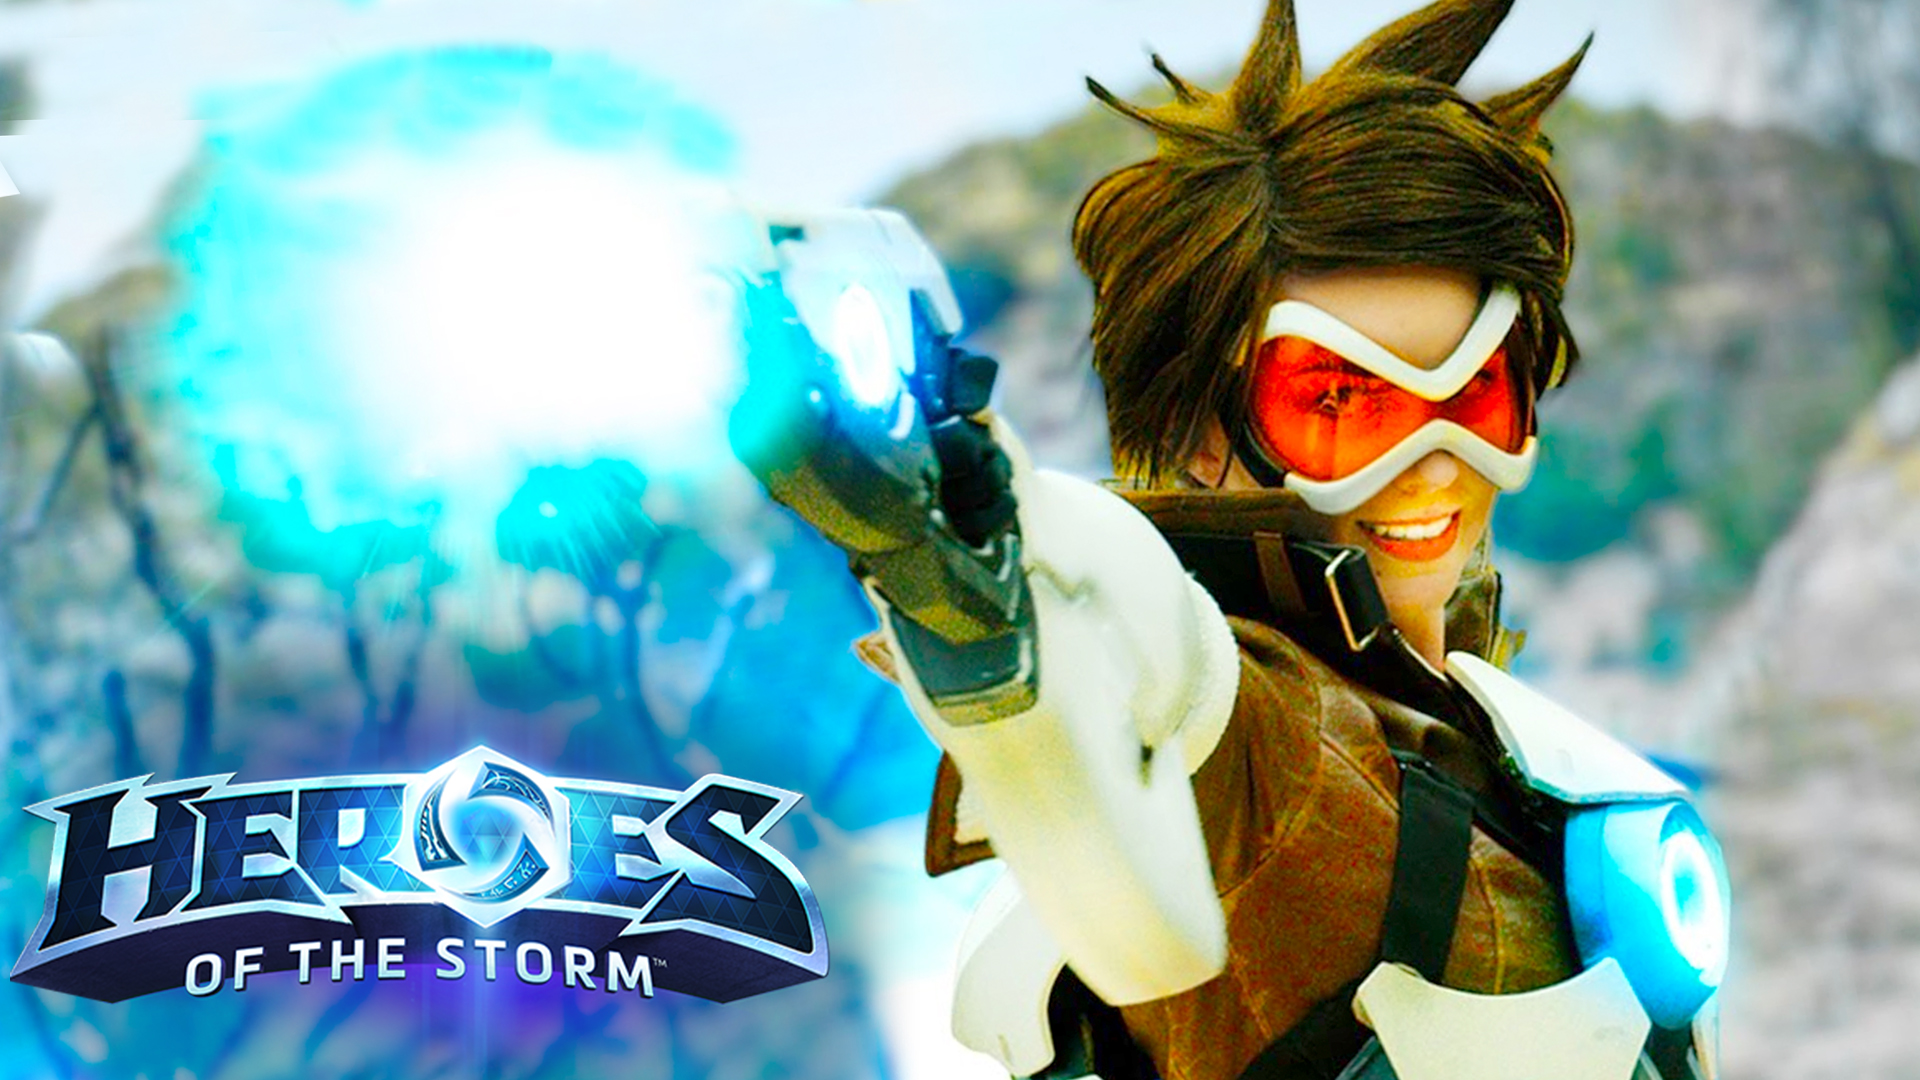 Heros of the Storm    Blizzard Entertainment Branded Content